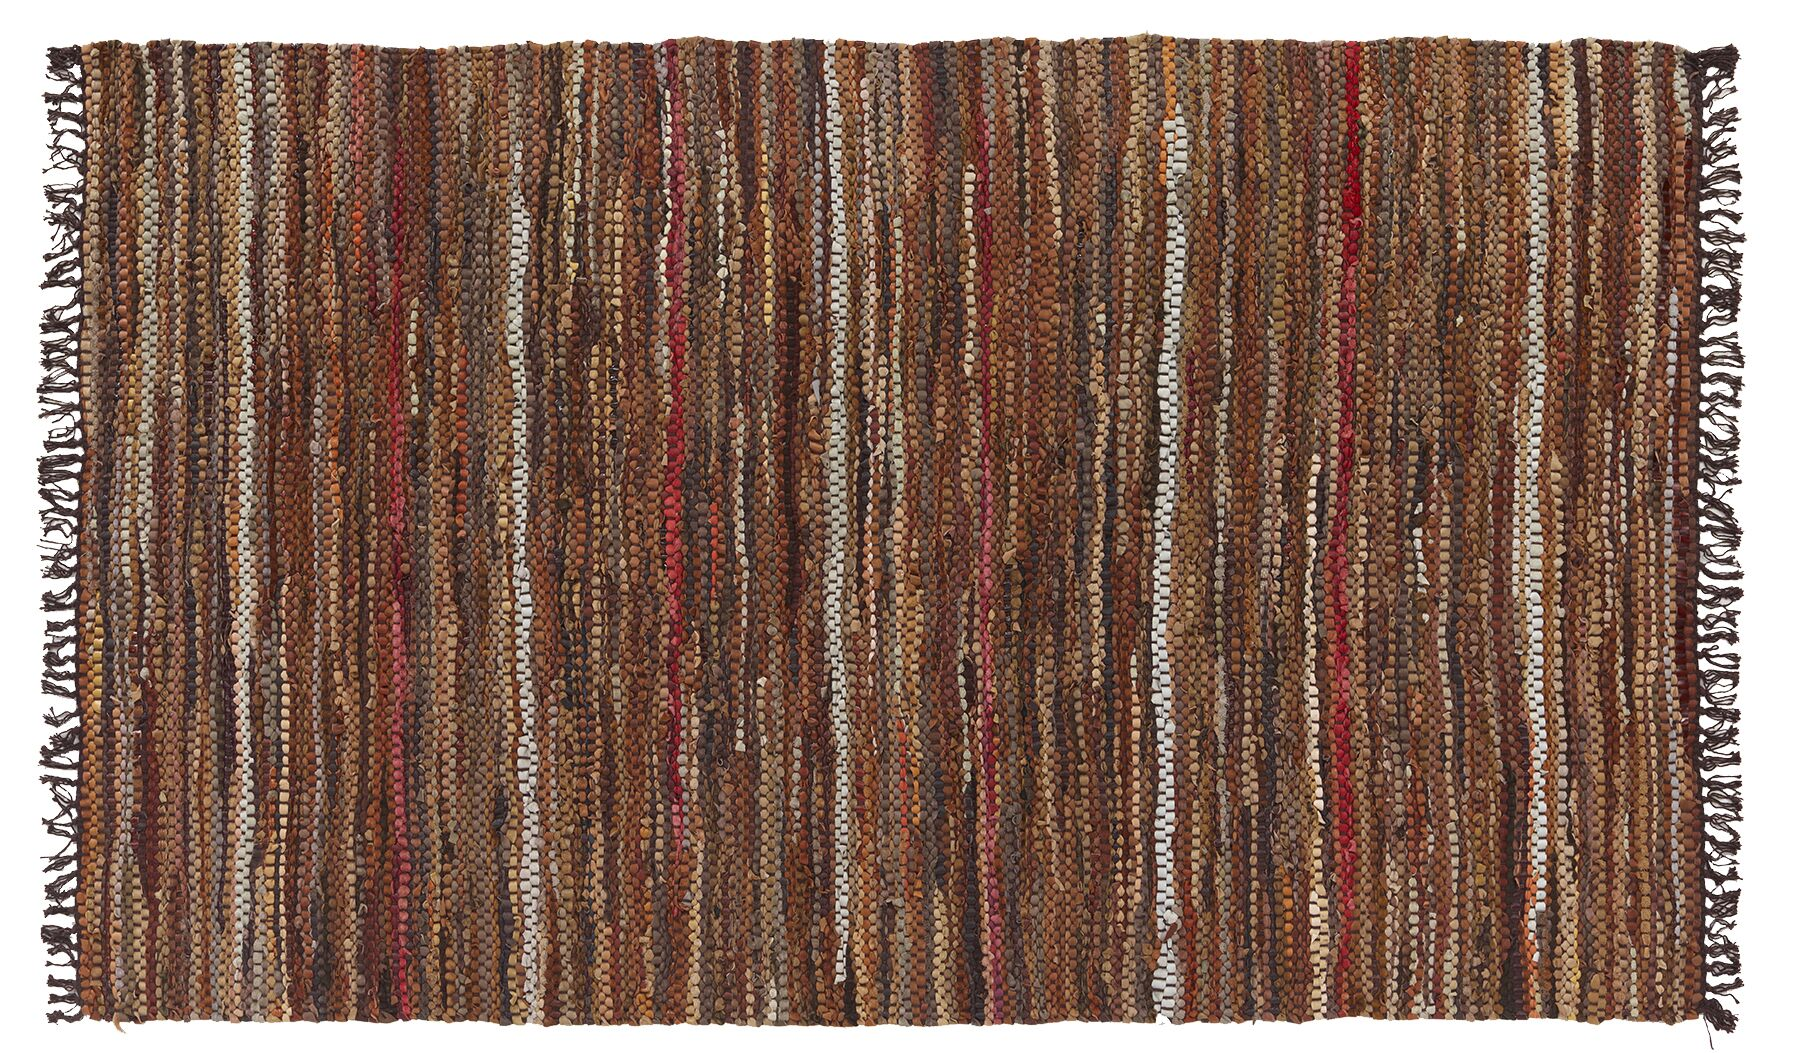 Tucson Hand-Tufted Cotton/Leather Brown Area Rug Rug Size: Rectangle 3'8